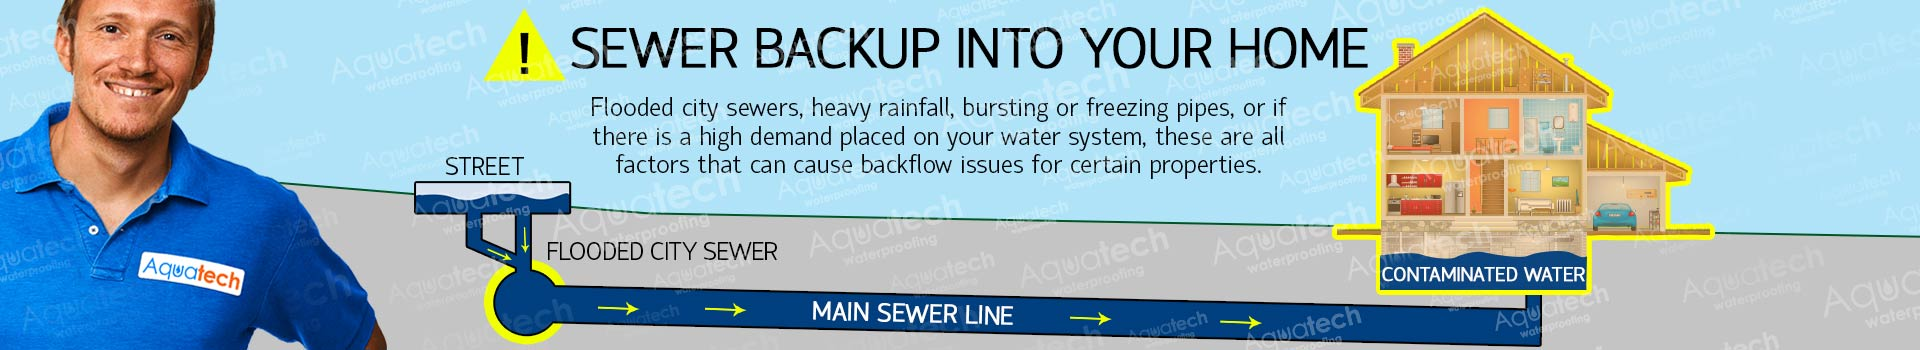 sewer-backup-to-home-scheme